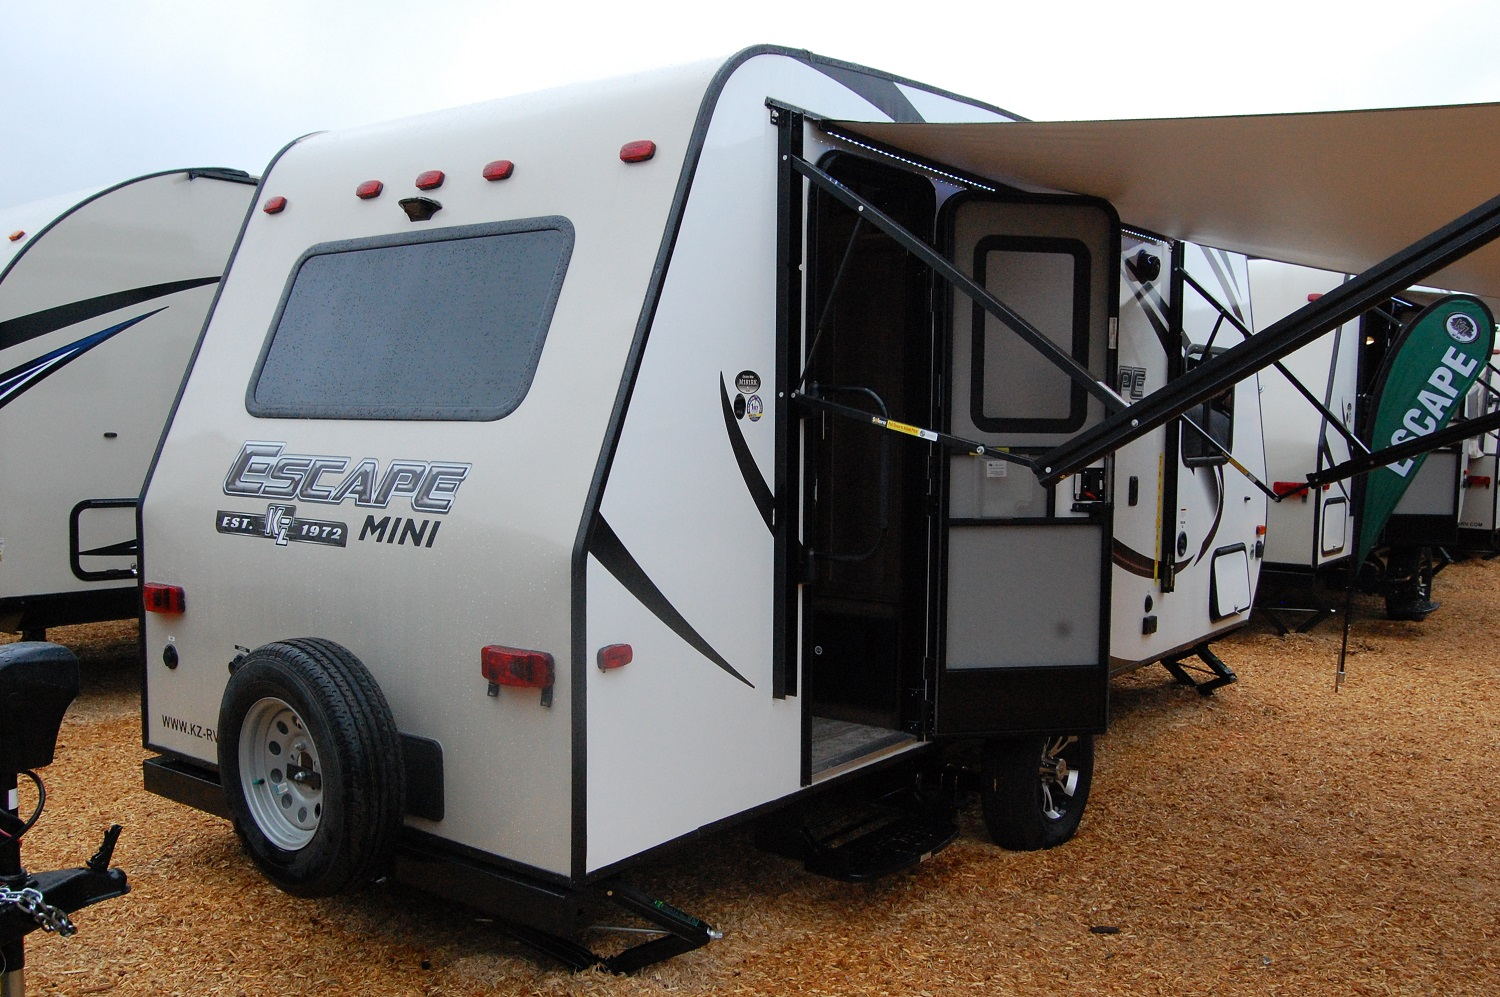 Camp Lite The Small Trailer Enthusiast